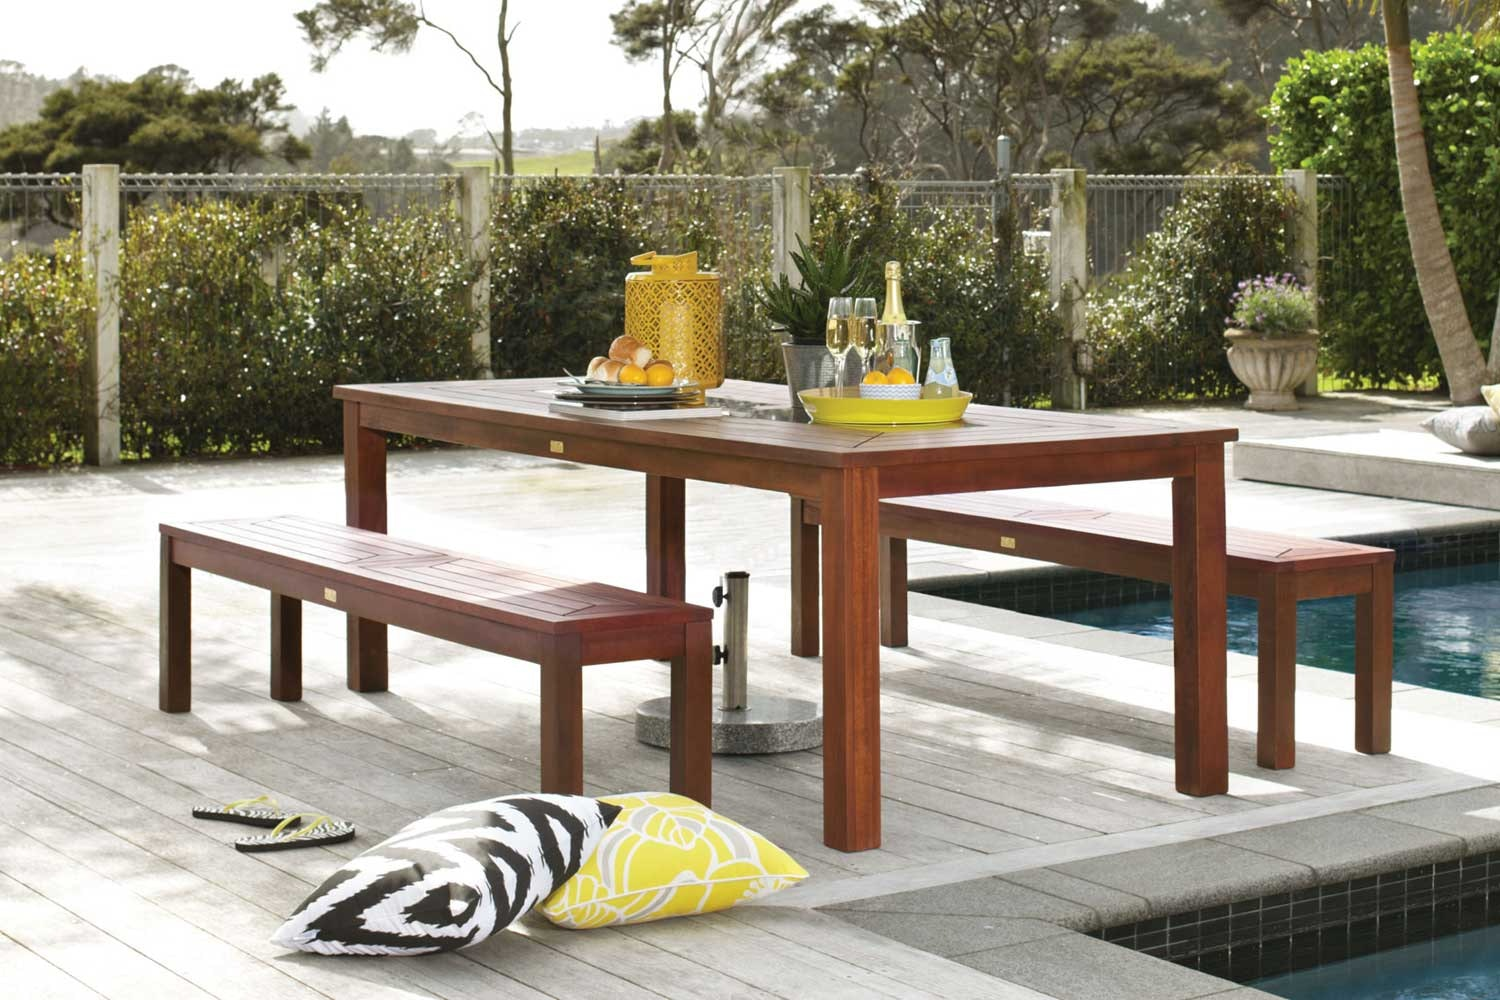 Maldives 3 Piece Outdoor Dining Setting